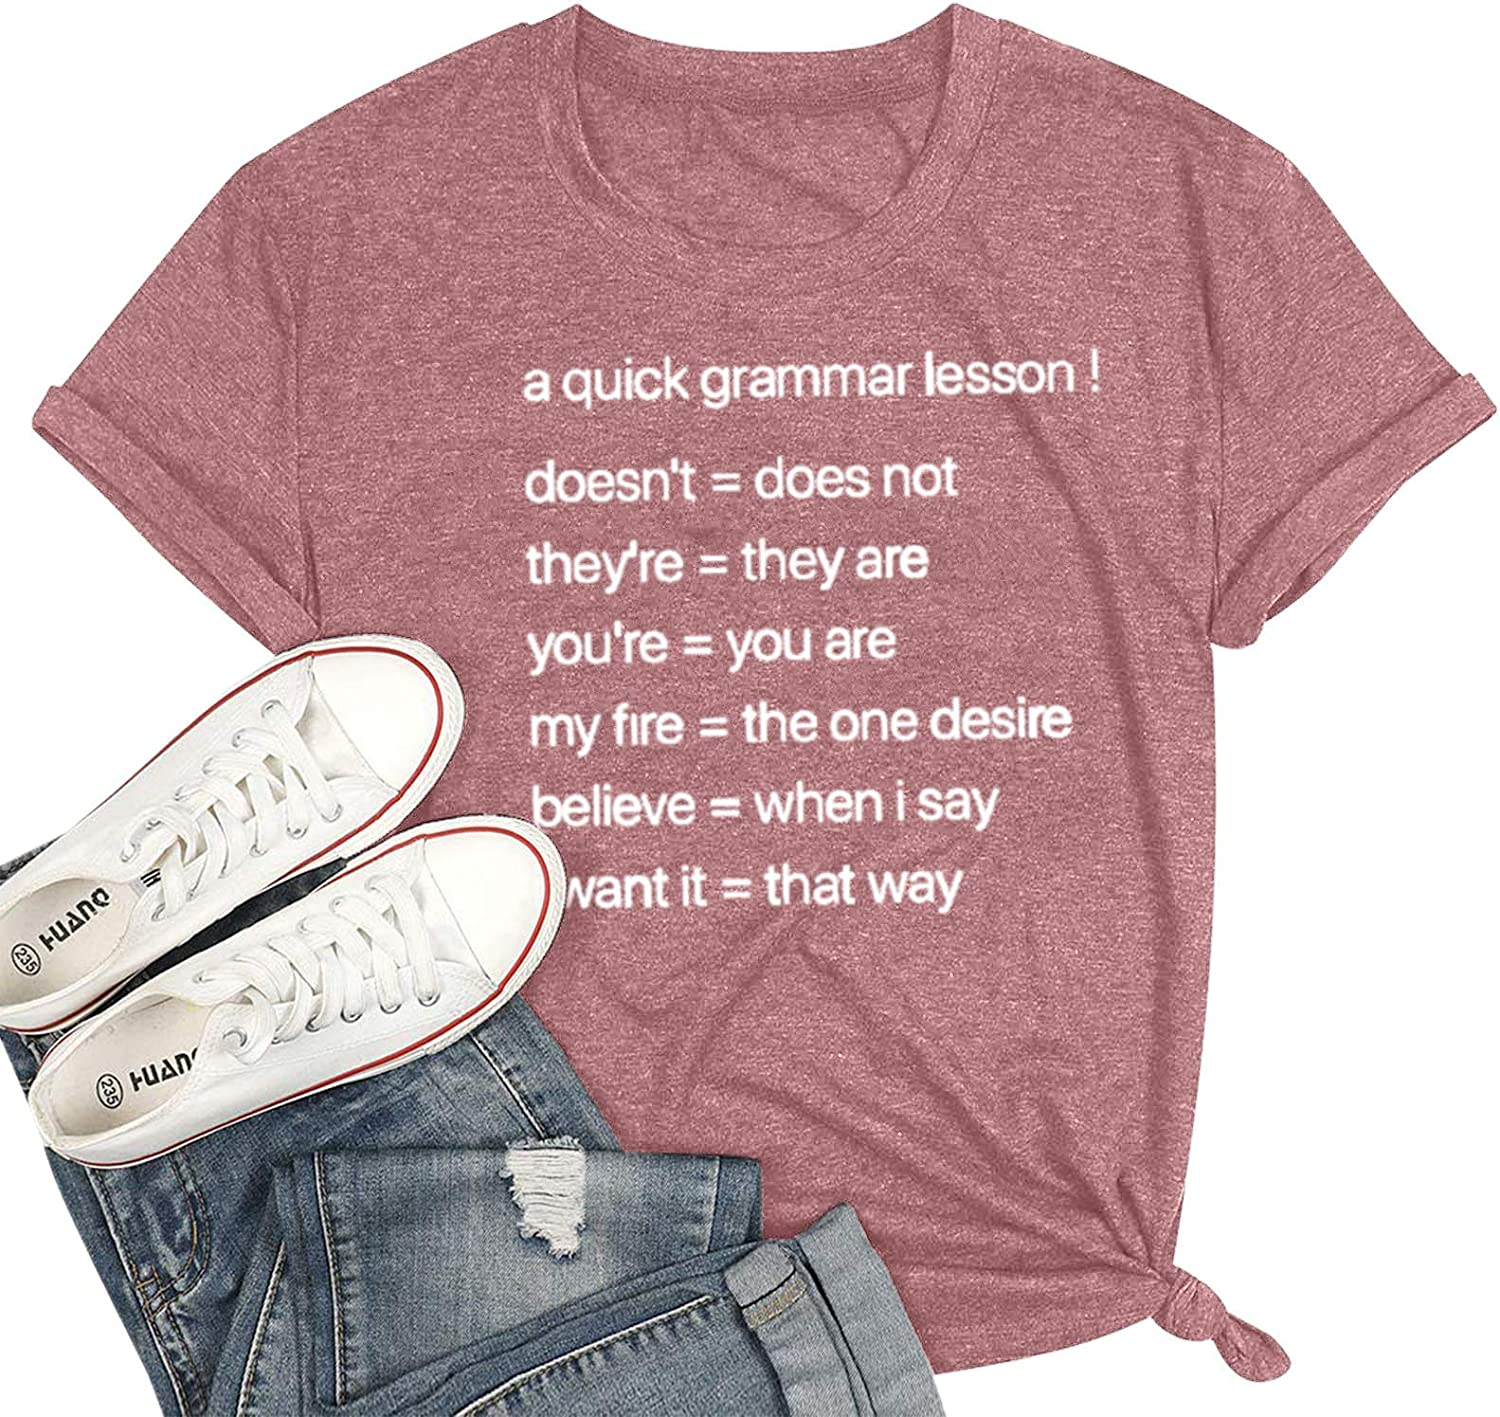 SSDXY Women's Short Sleeve Heart Letter Print Summer Casual Tops Tee T-Shirt Pattern Funny Crewneck Blouse for Girls